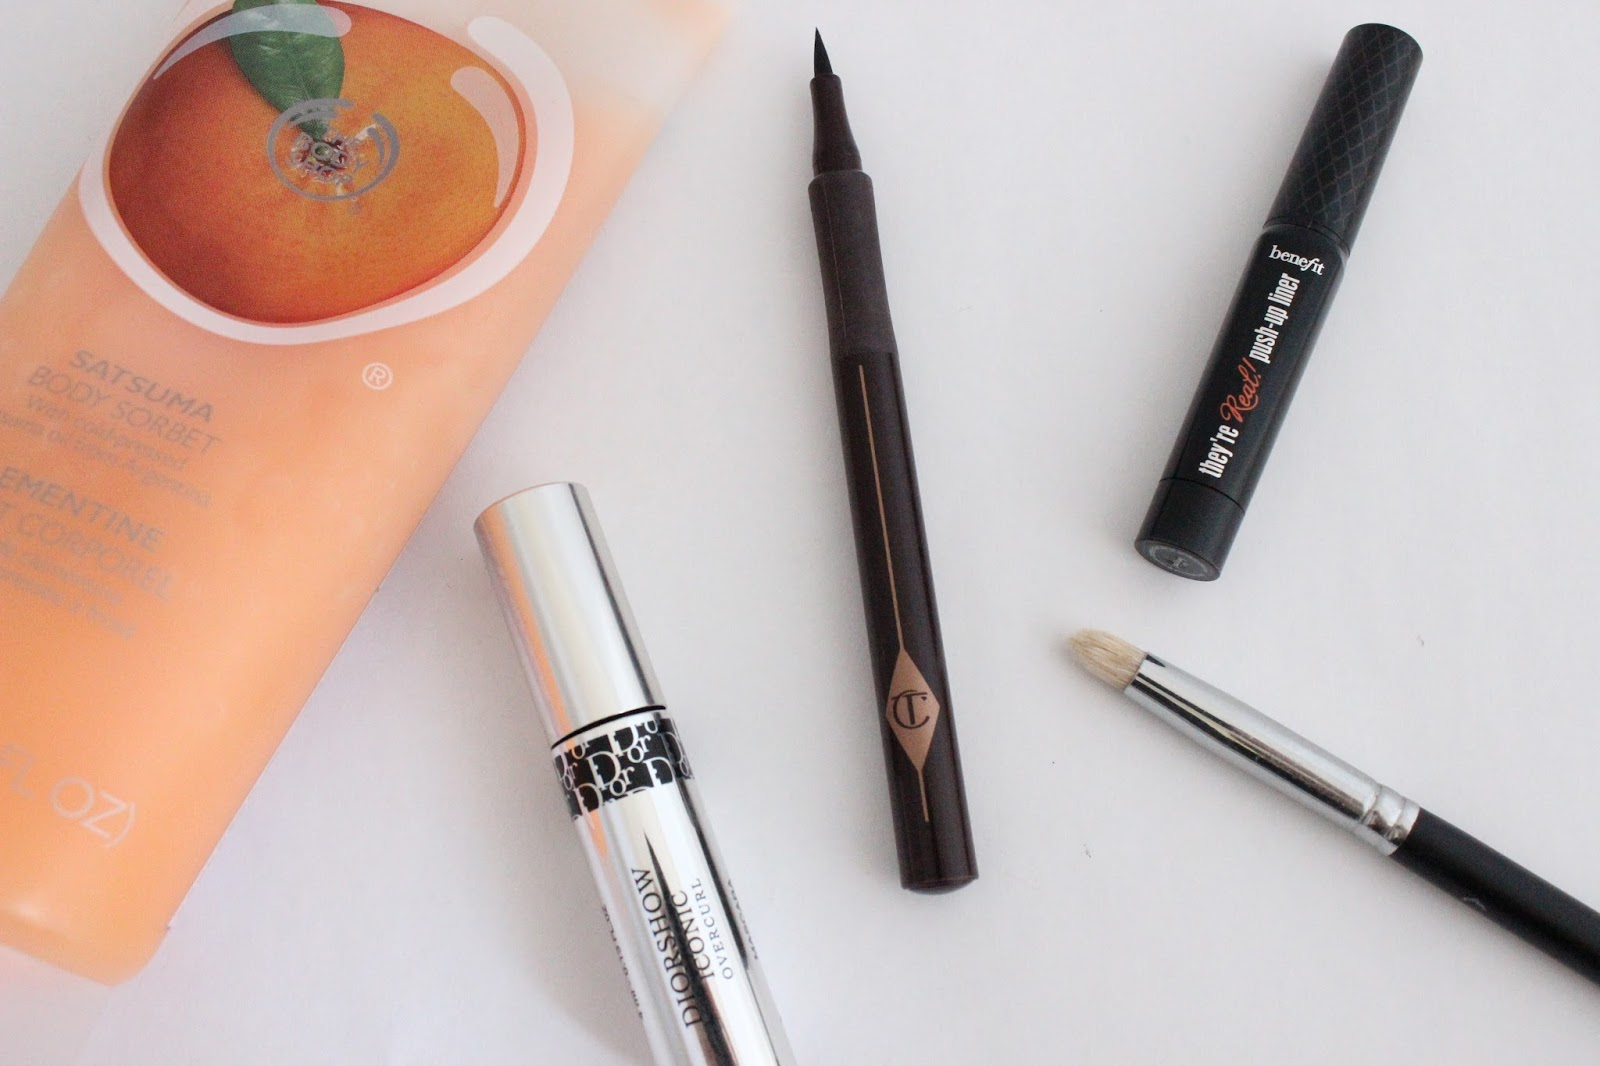 Disappointing Products: The Body Shop Satsuma Body Sorbet, Diorshow Iconic Overcurl Mascara, Charlotte Tilbury The Feline Flick Quick Line Shodo Pen, Benefit They're Real Push-Up Liner, Crownbrush C431 Precision Detail Brush